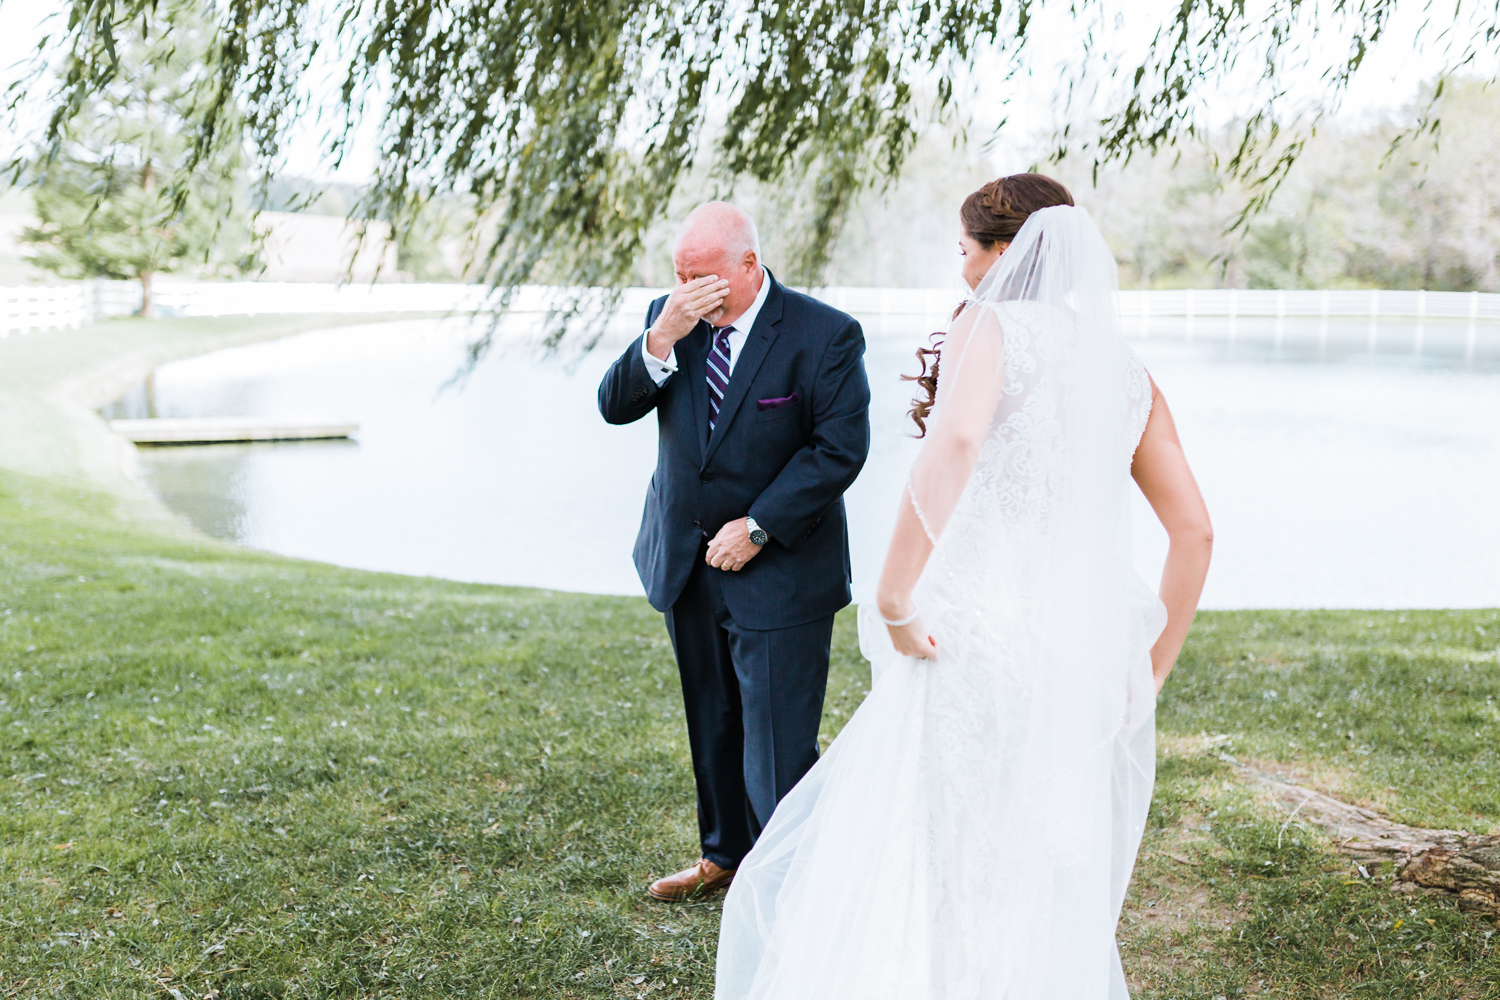 adorable moment between father and daughter during their first look - Maryland wedding venues with pond or water and willow trees